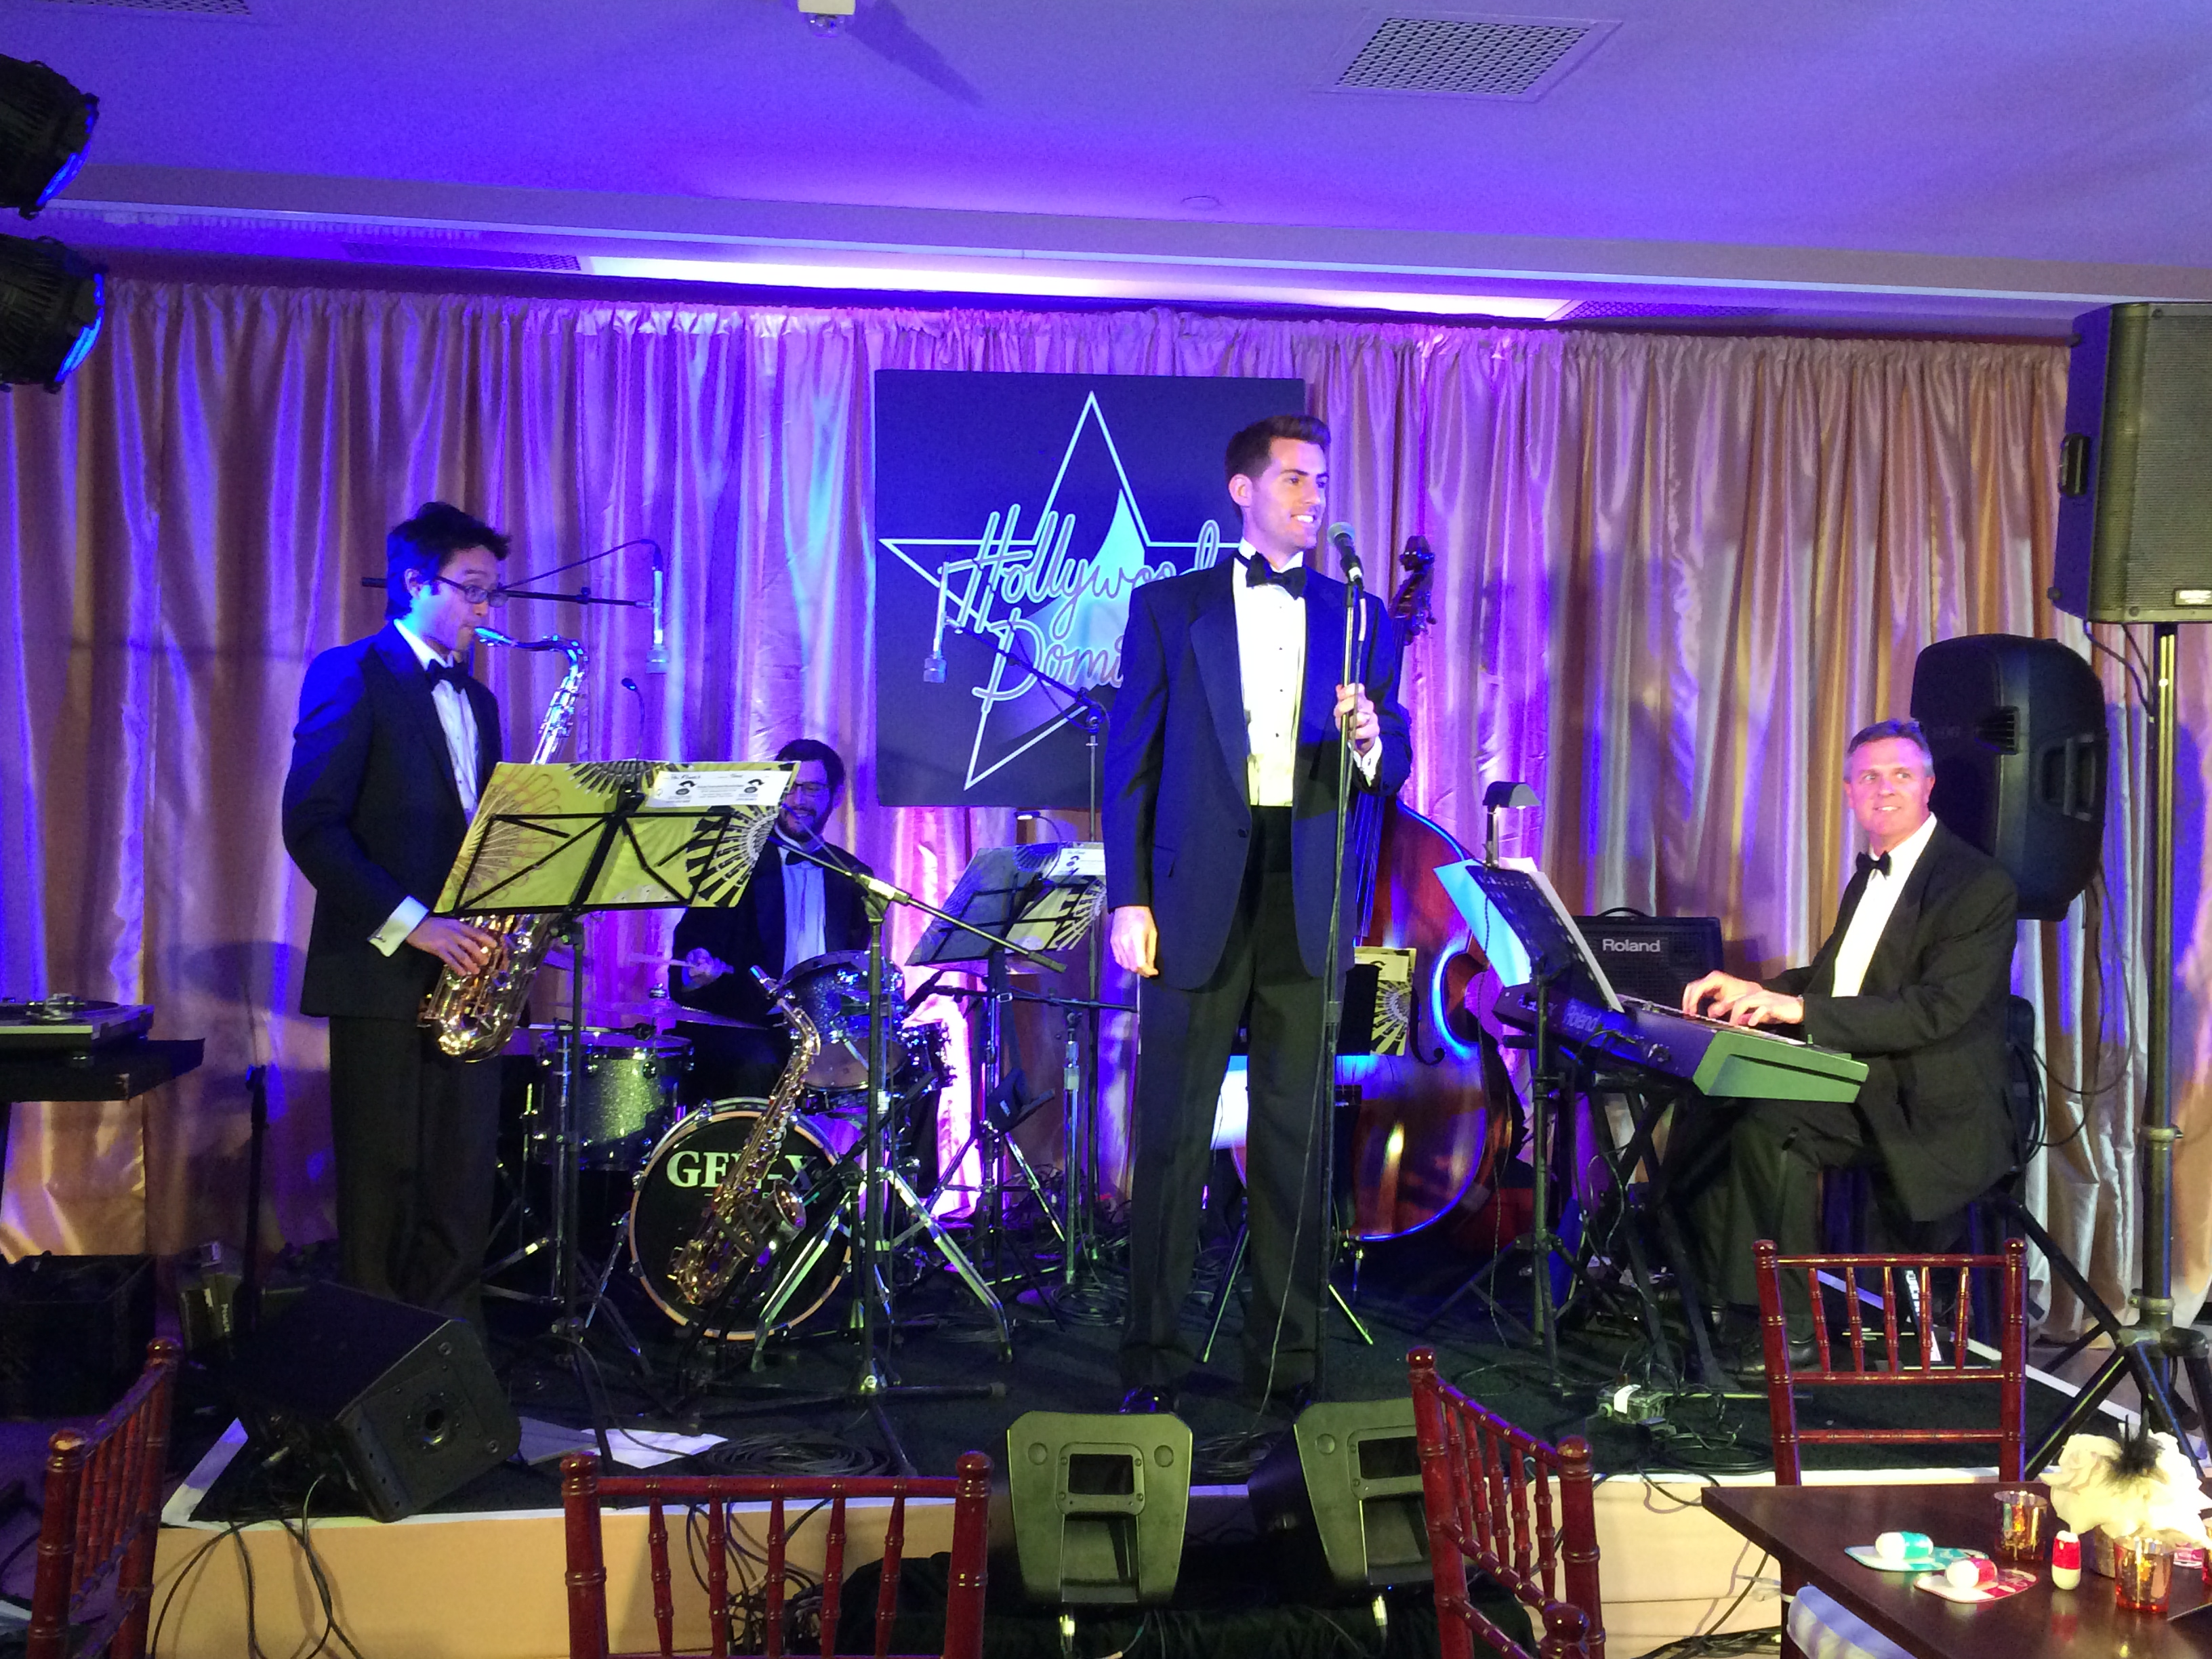 Hollywood Domino 2014: GigMasters members N8+ Jazz Band perform